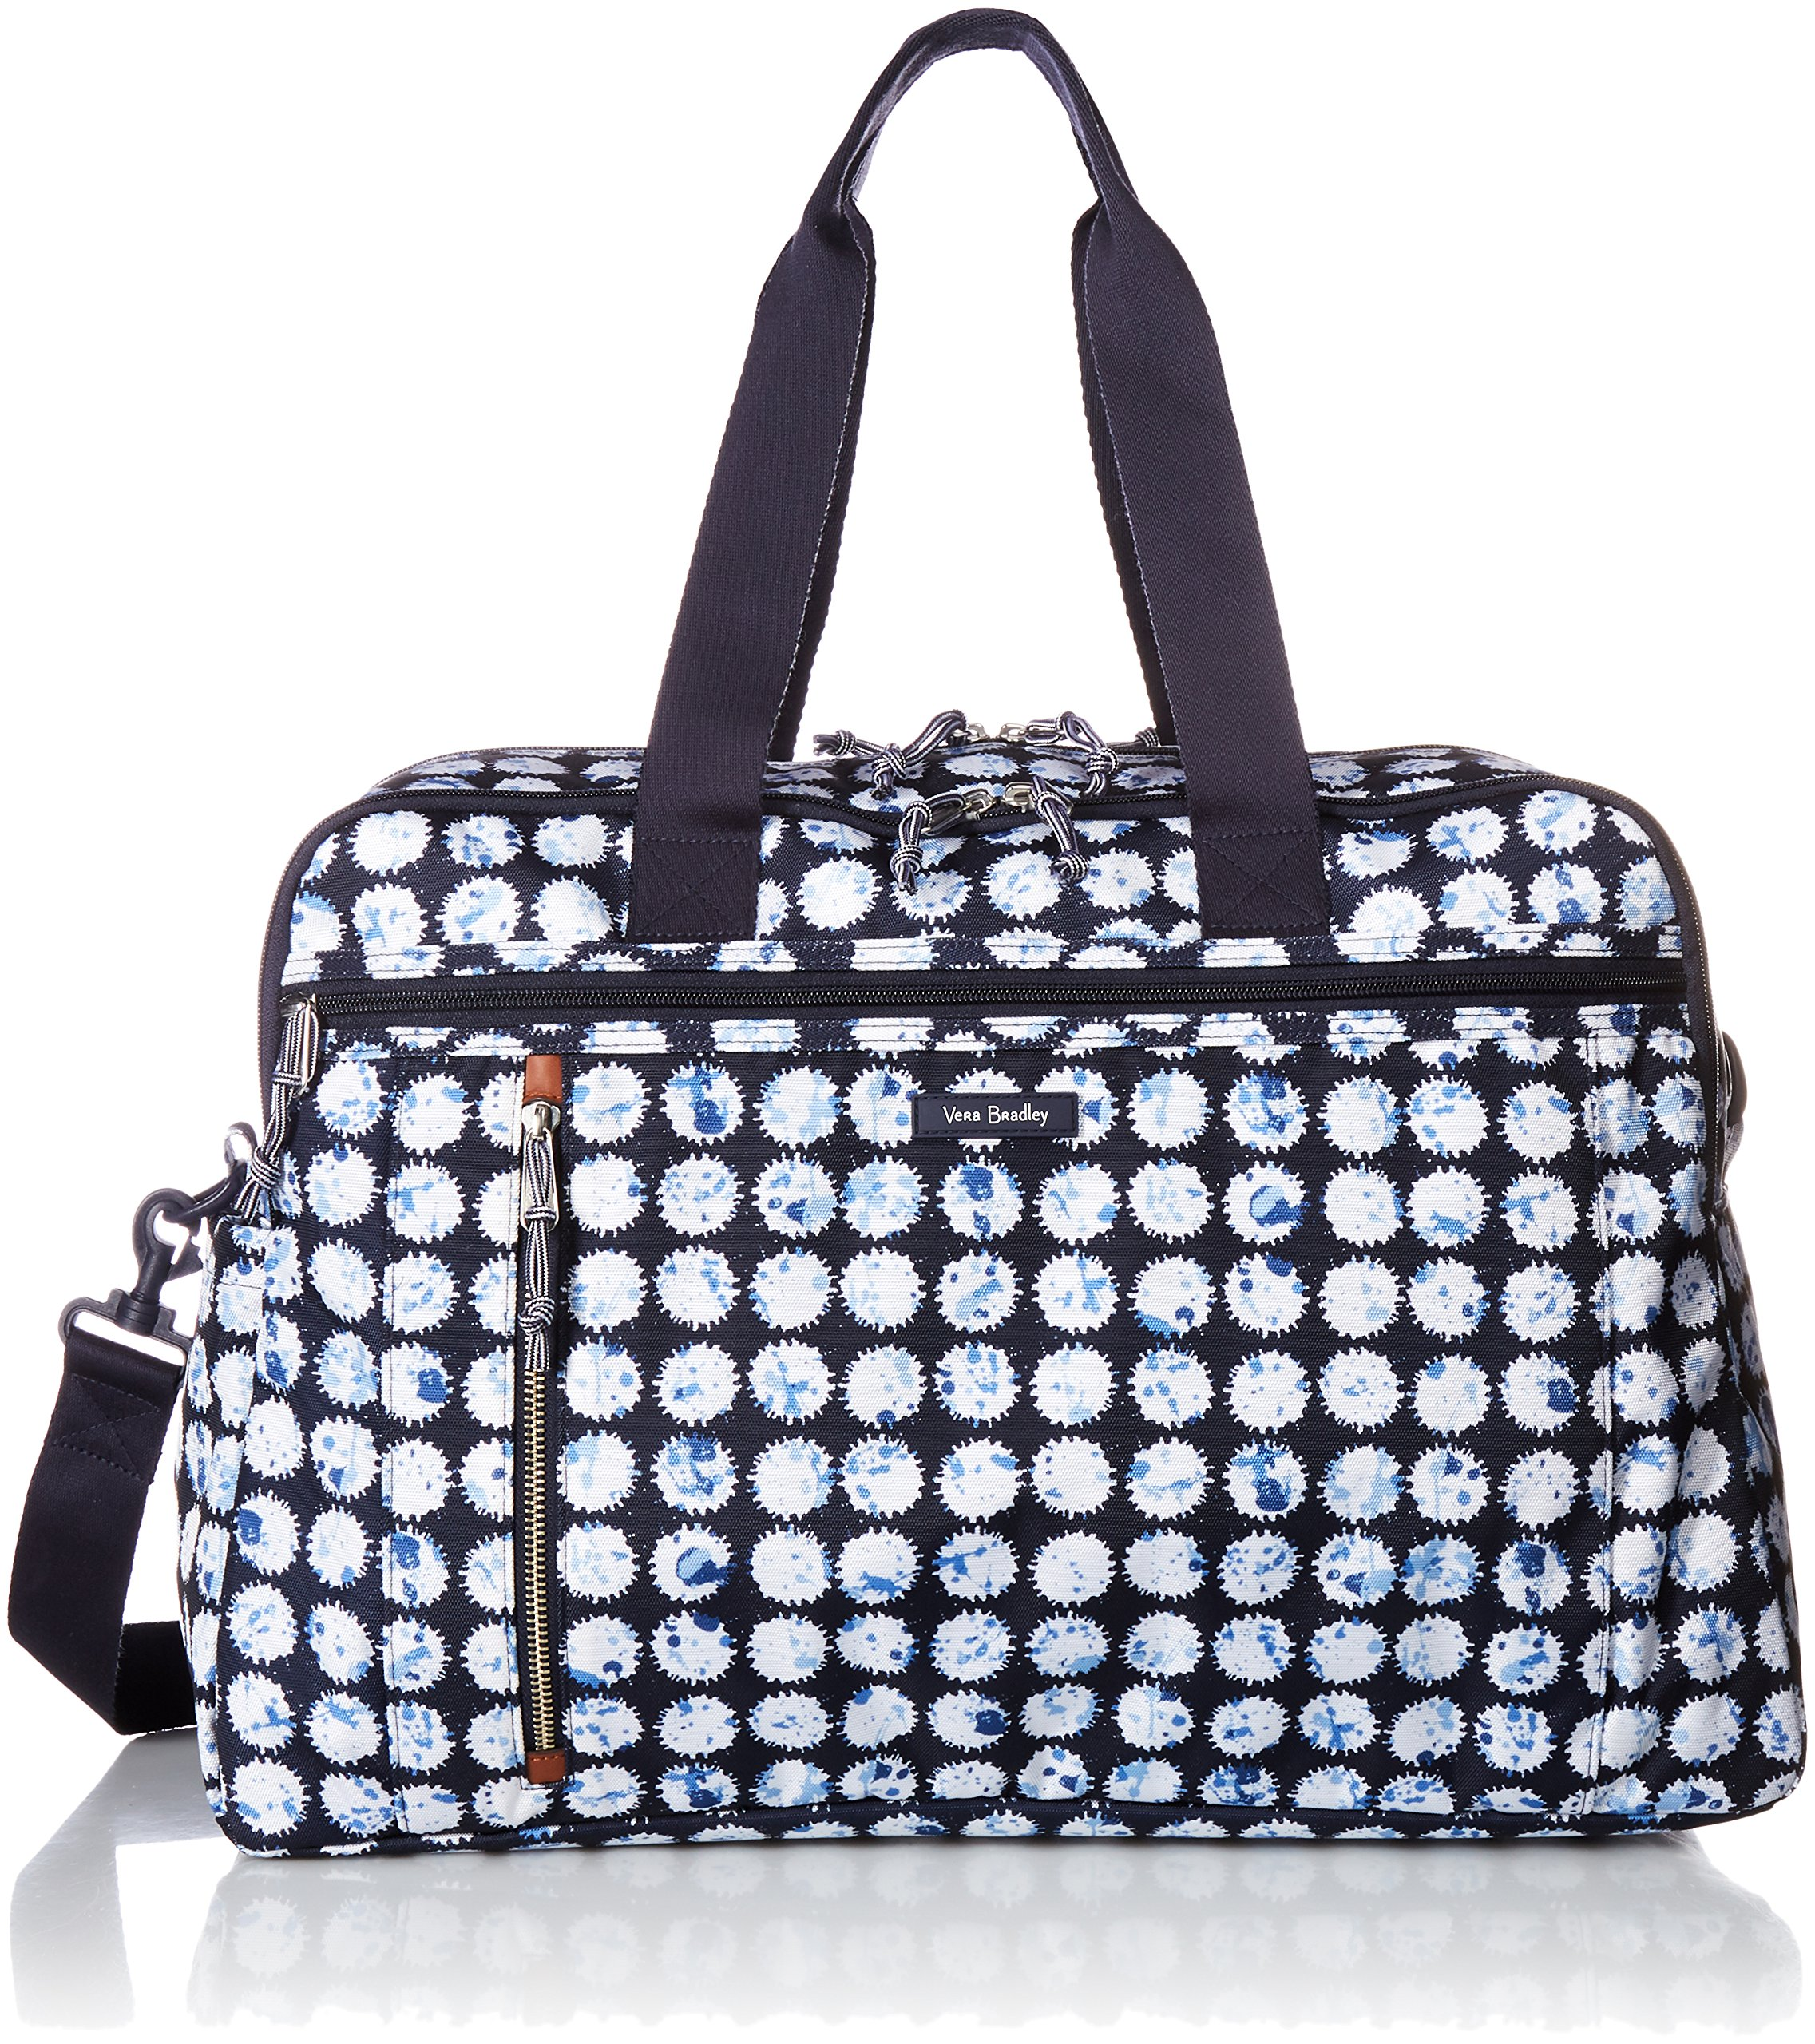 Vera Bradley Lighten up Weekender Travel Bag, Polyester, Splash Dot